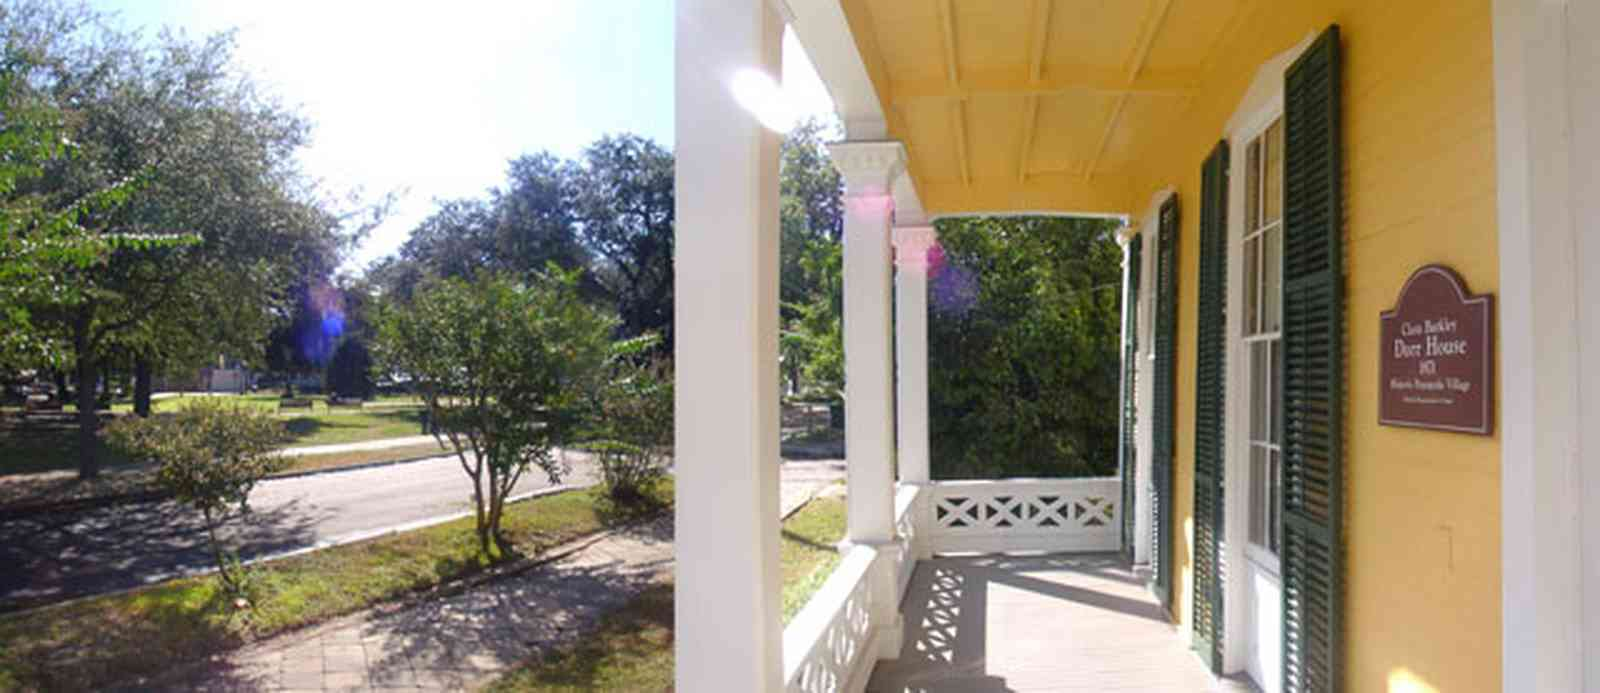 Pensacola:-Historic-Pensacola-Village:-Dorr-House_05.jpg:  greek revival architecture